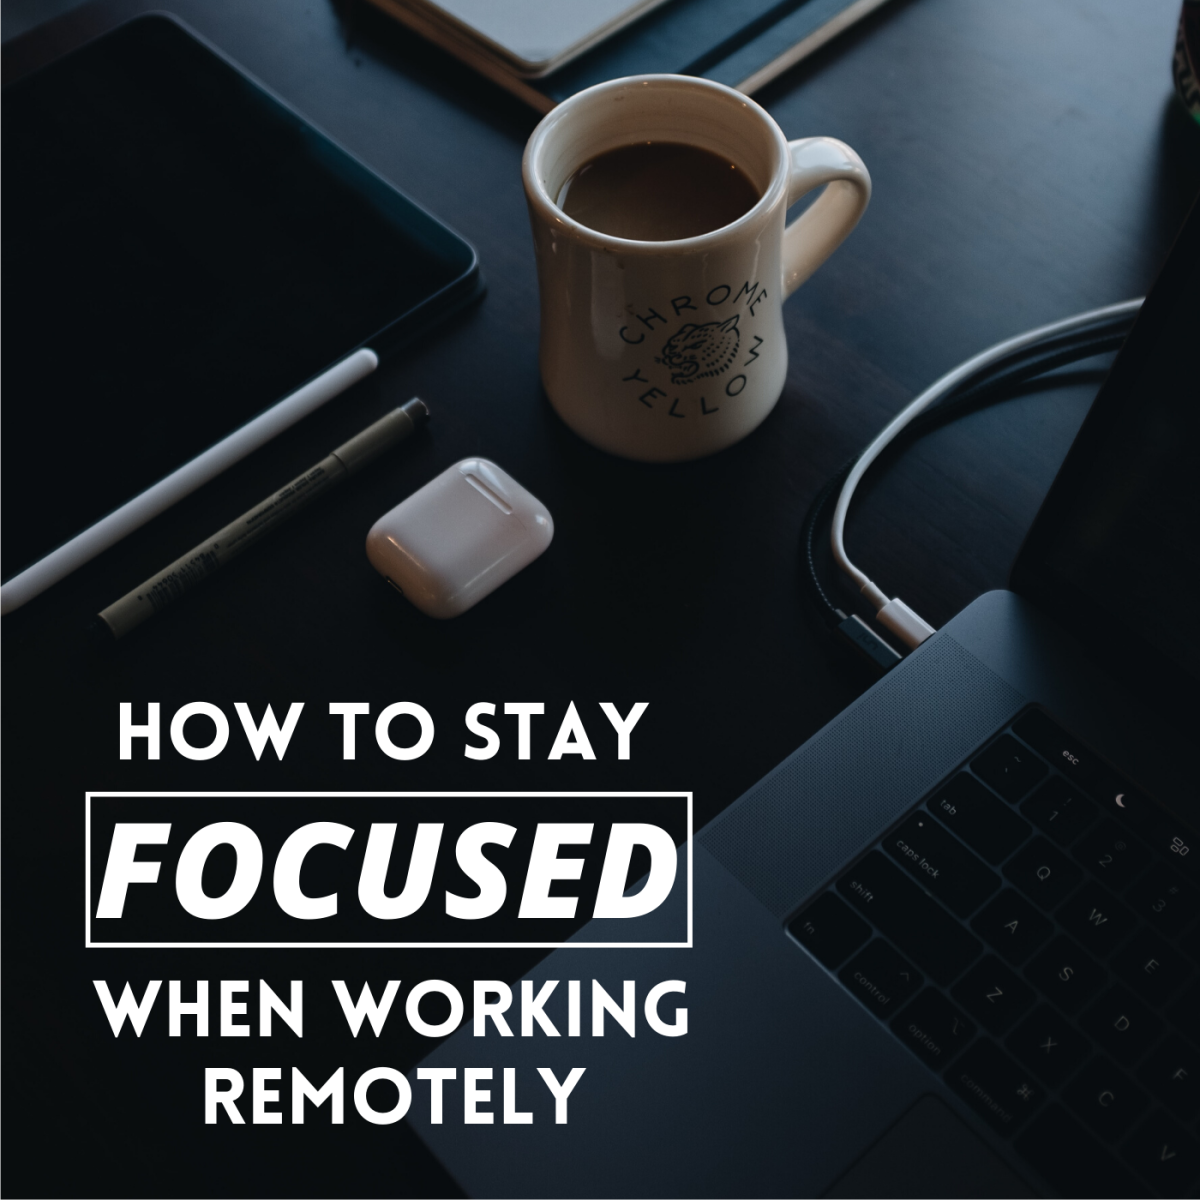 Staying on-task when working off-site can be challenging. These tips can help.